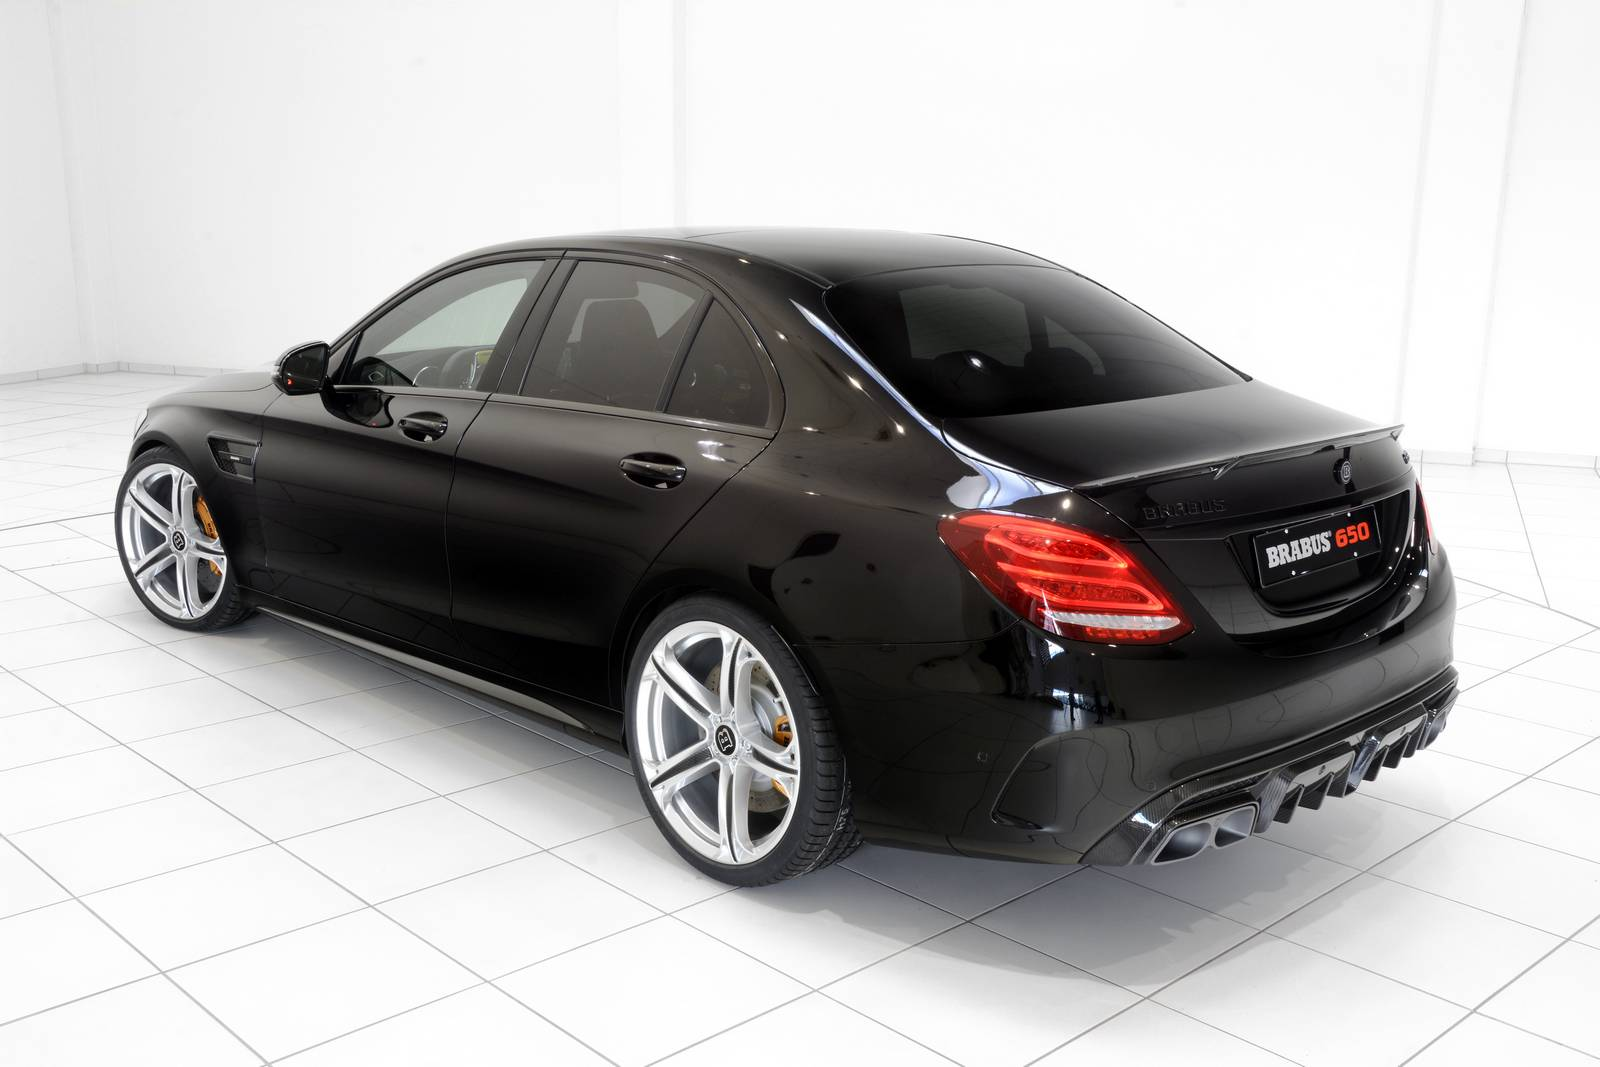 brabus 650 based on mercedes amg c63 w205 benztuning. Black Bedroom Furniture Sets. Home Design Ideas